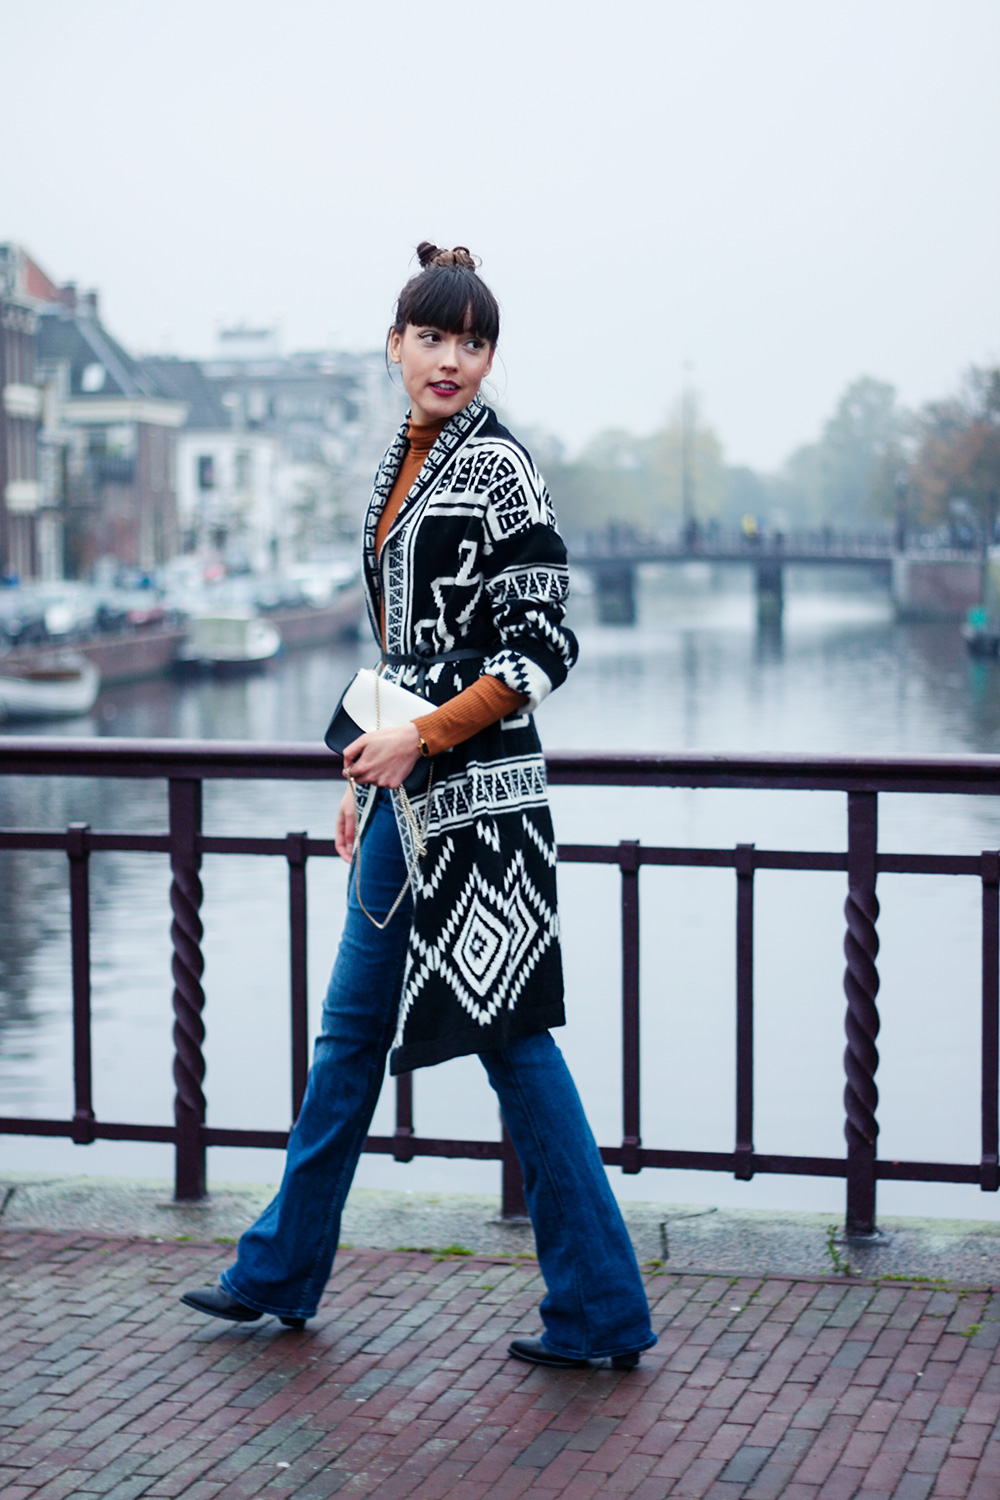 comfy-cardigan-outfit-5-things-to-make-you-happy-2